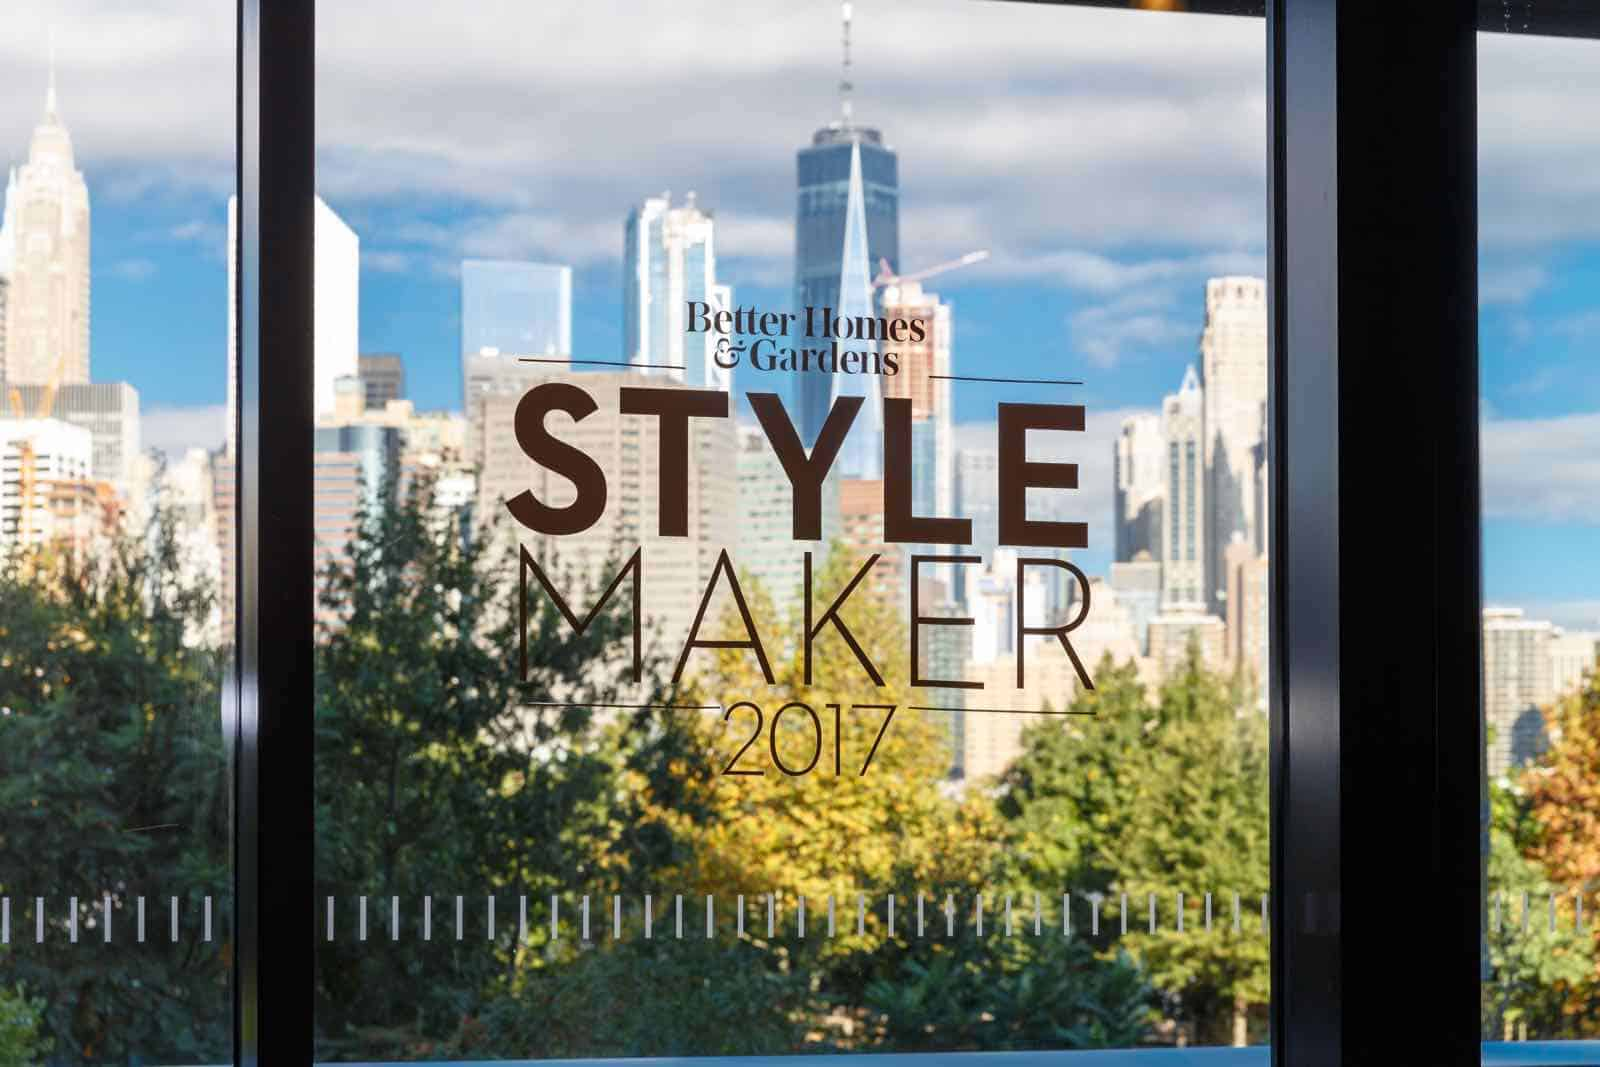 bhg stylemaker event hotel